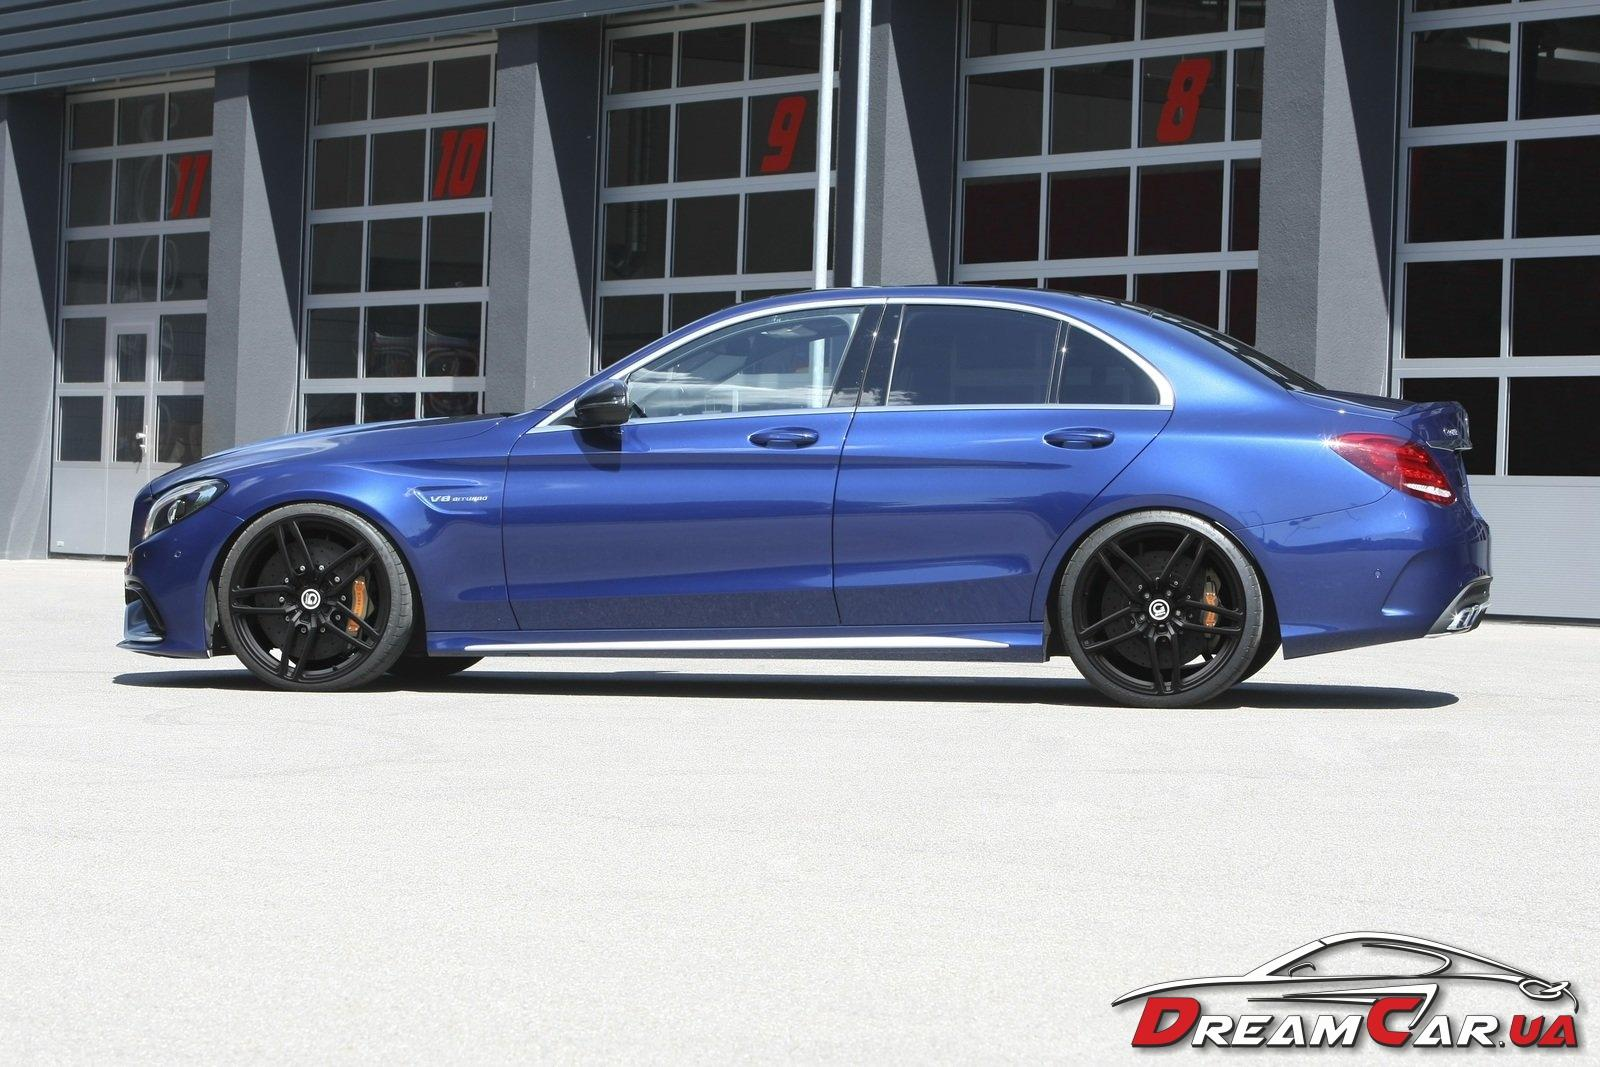 Mercedes C63 S G-power 2